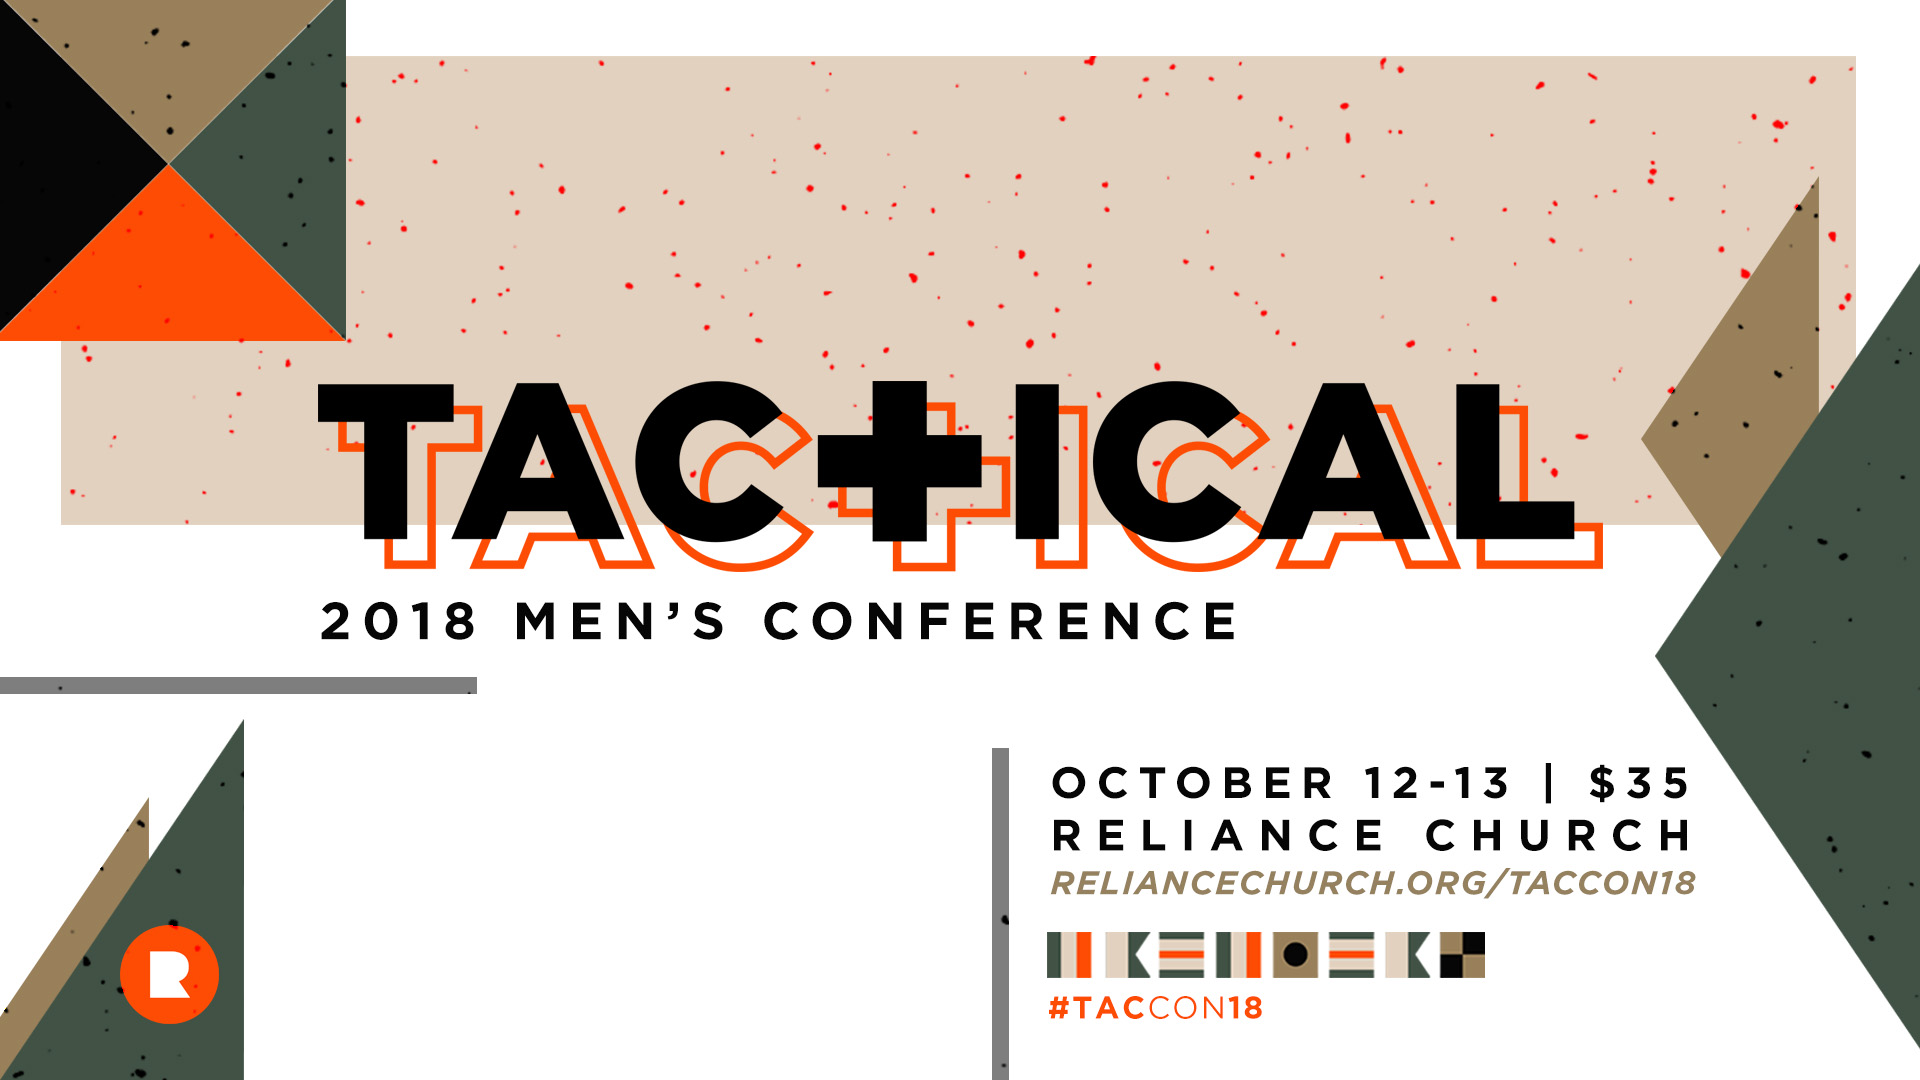 RC_Tactical Mens Conference 2018 [Screen Promo_1920 x 1080]